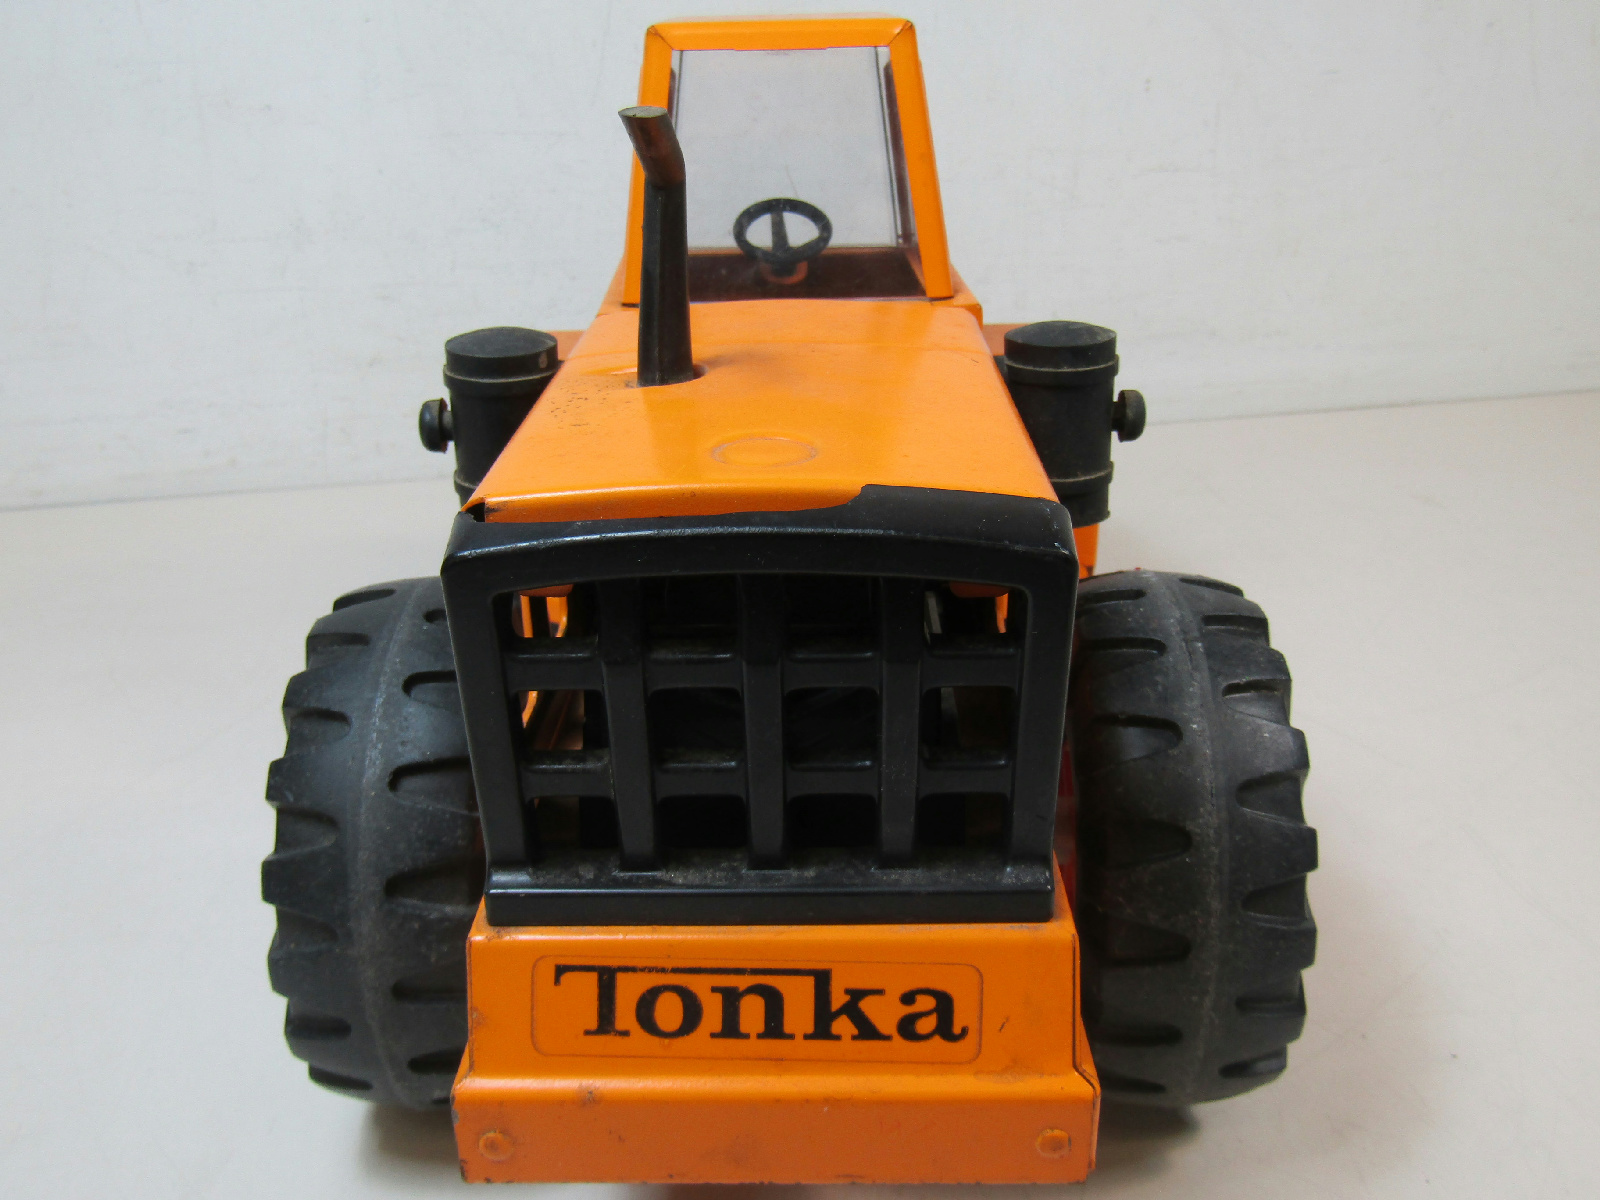 Mighty Vintage Vintage Mighty Tonka Roller Construction Vehicle Toy | Ebay